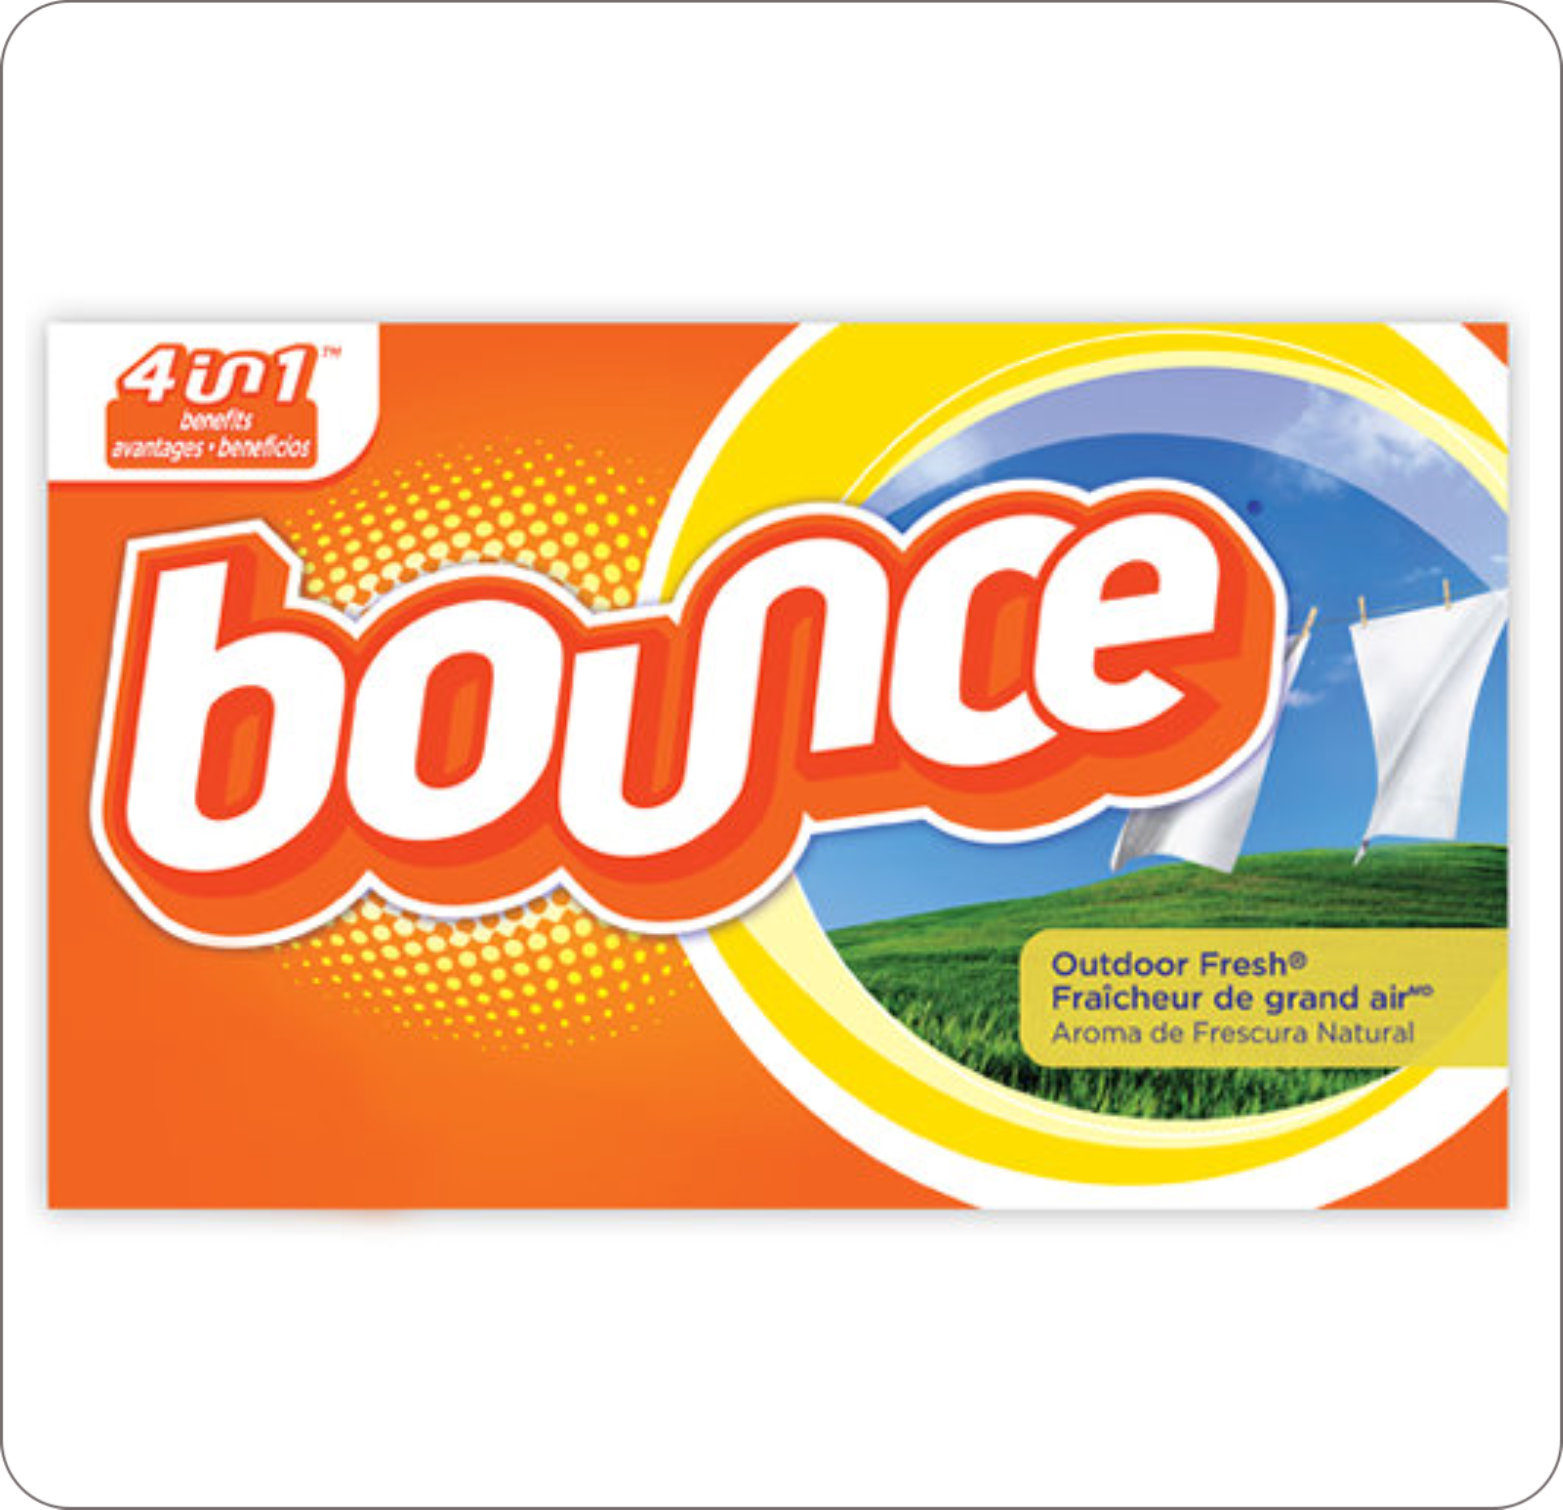 Softener Fabric Bounce Sheet Outdoor Fresh